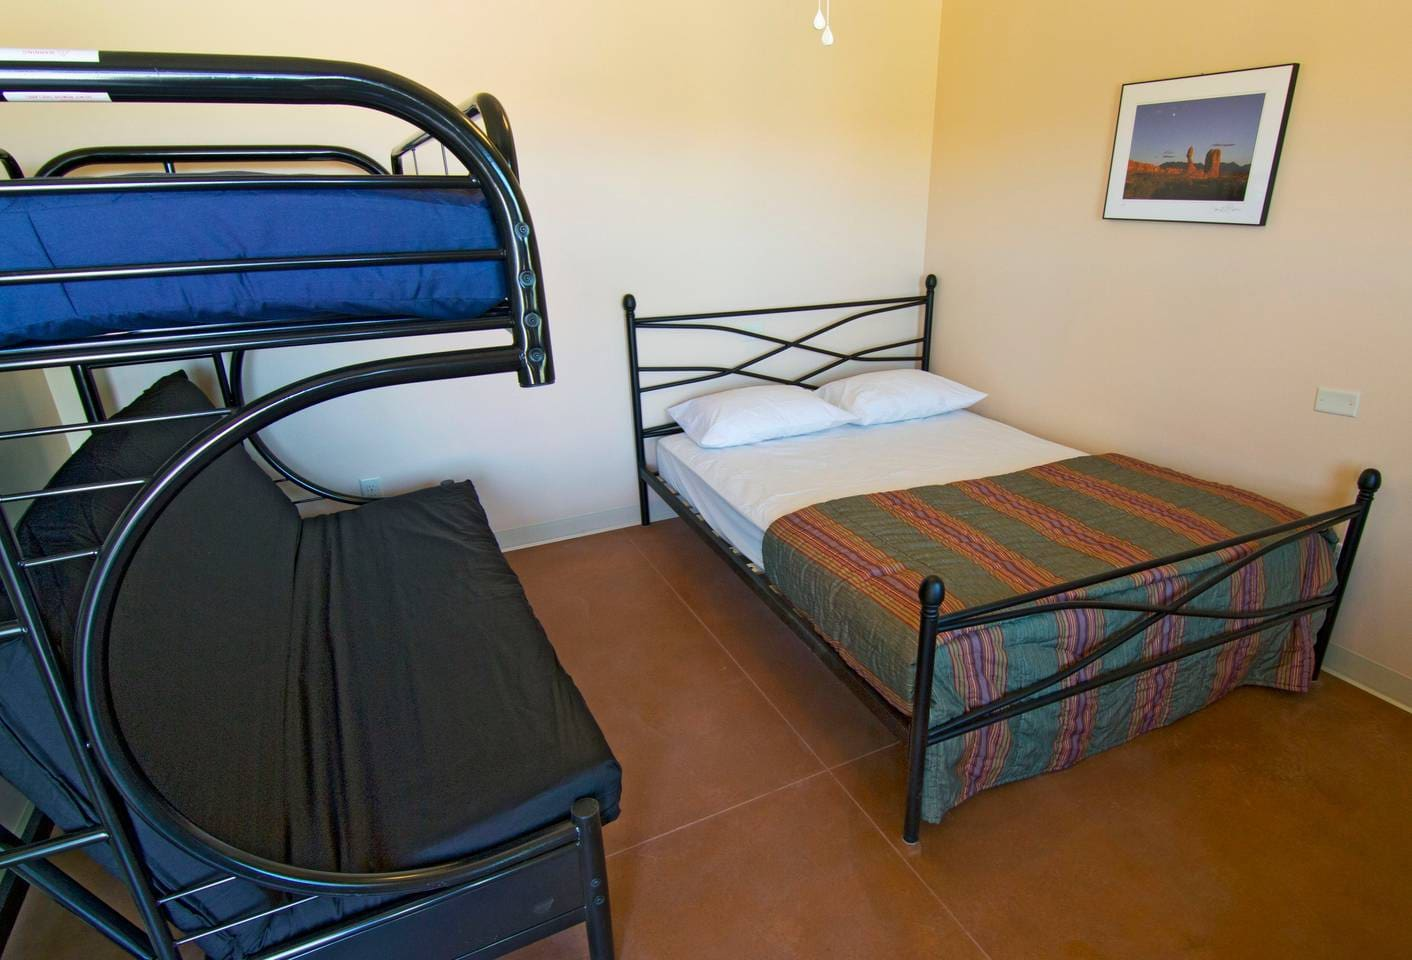 Each room sleeps up to 5 people. Linens, pillows, and towels are provided.